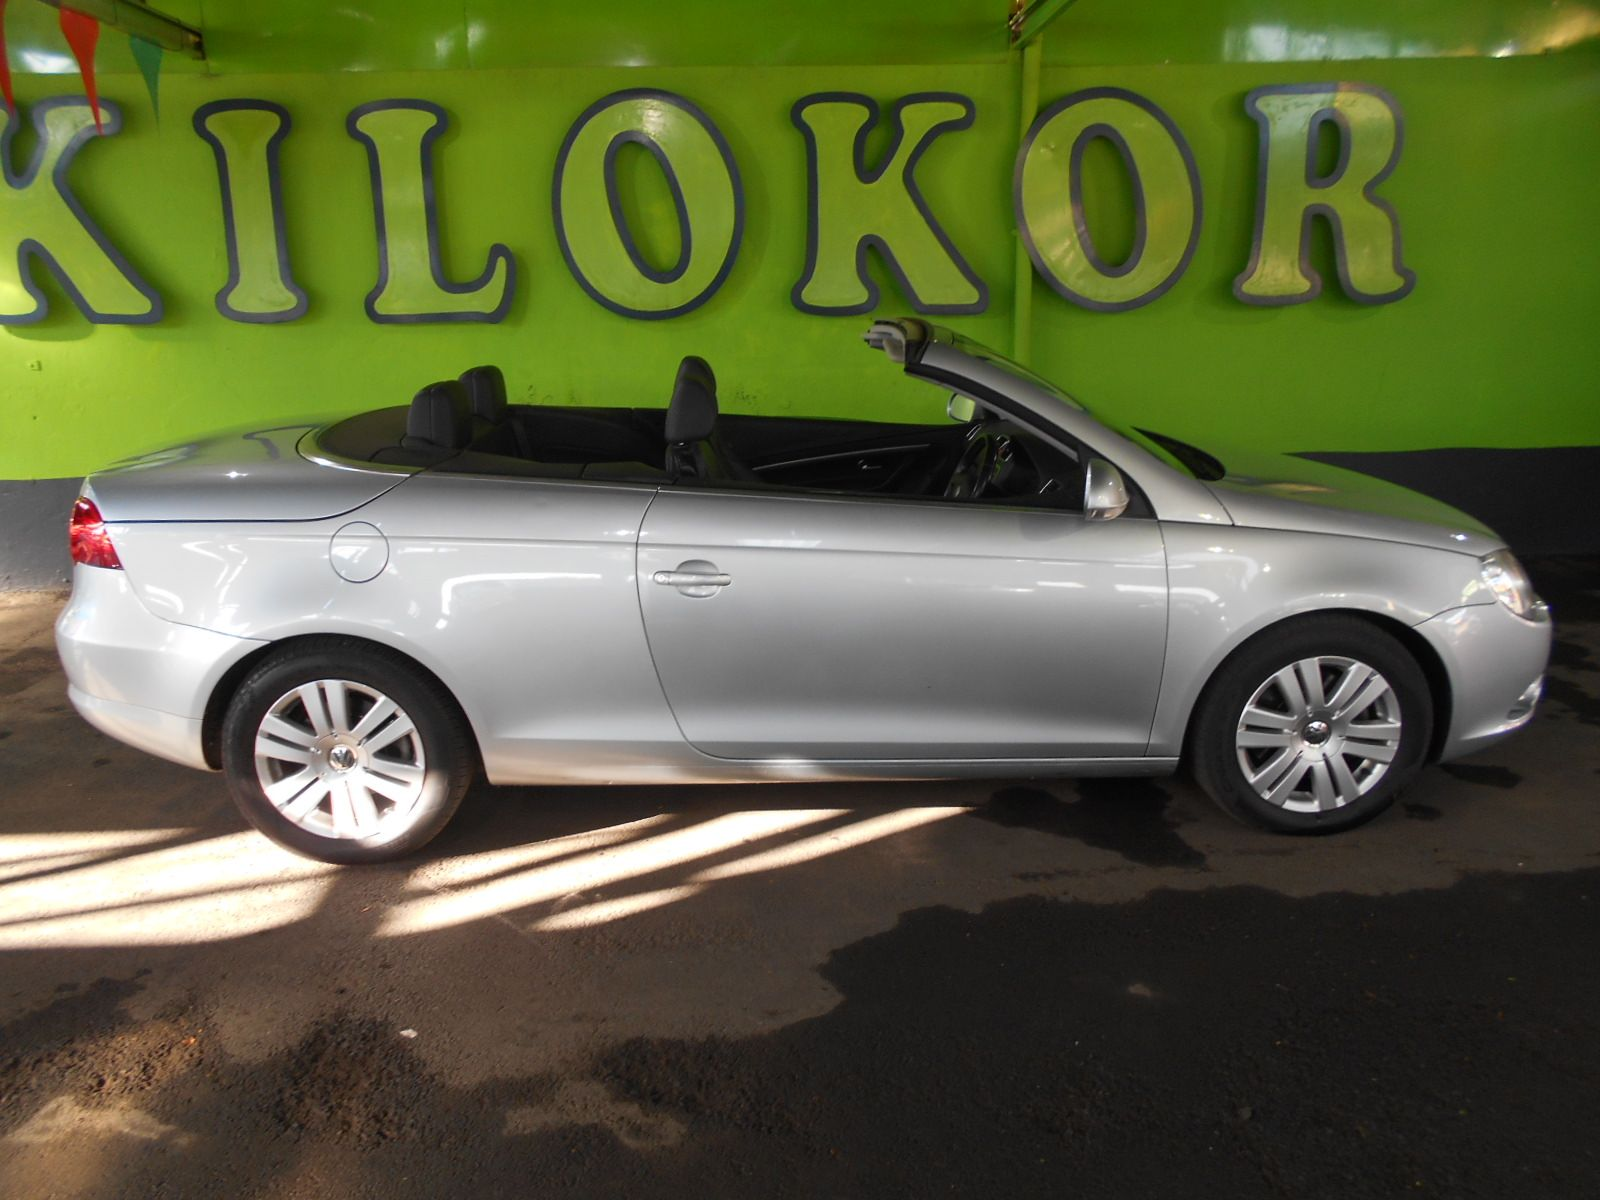 2008 volkswagen eos r 159 990 for sale kilokor motors. Black Bedroom Furniture Sets. Home Design Ideas